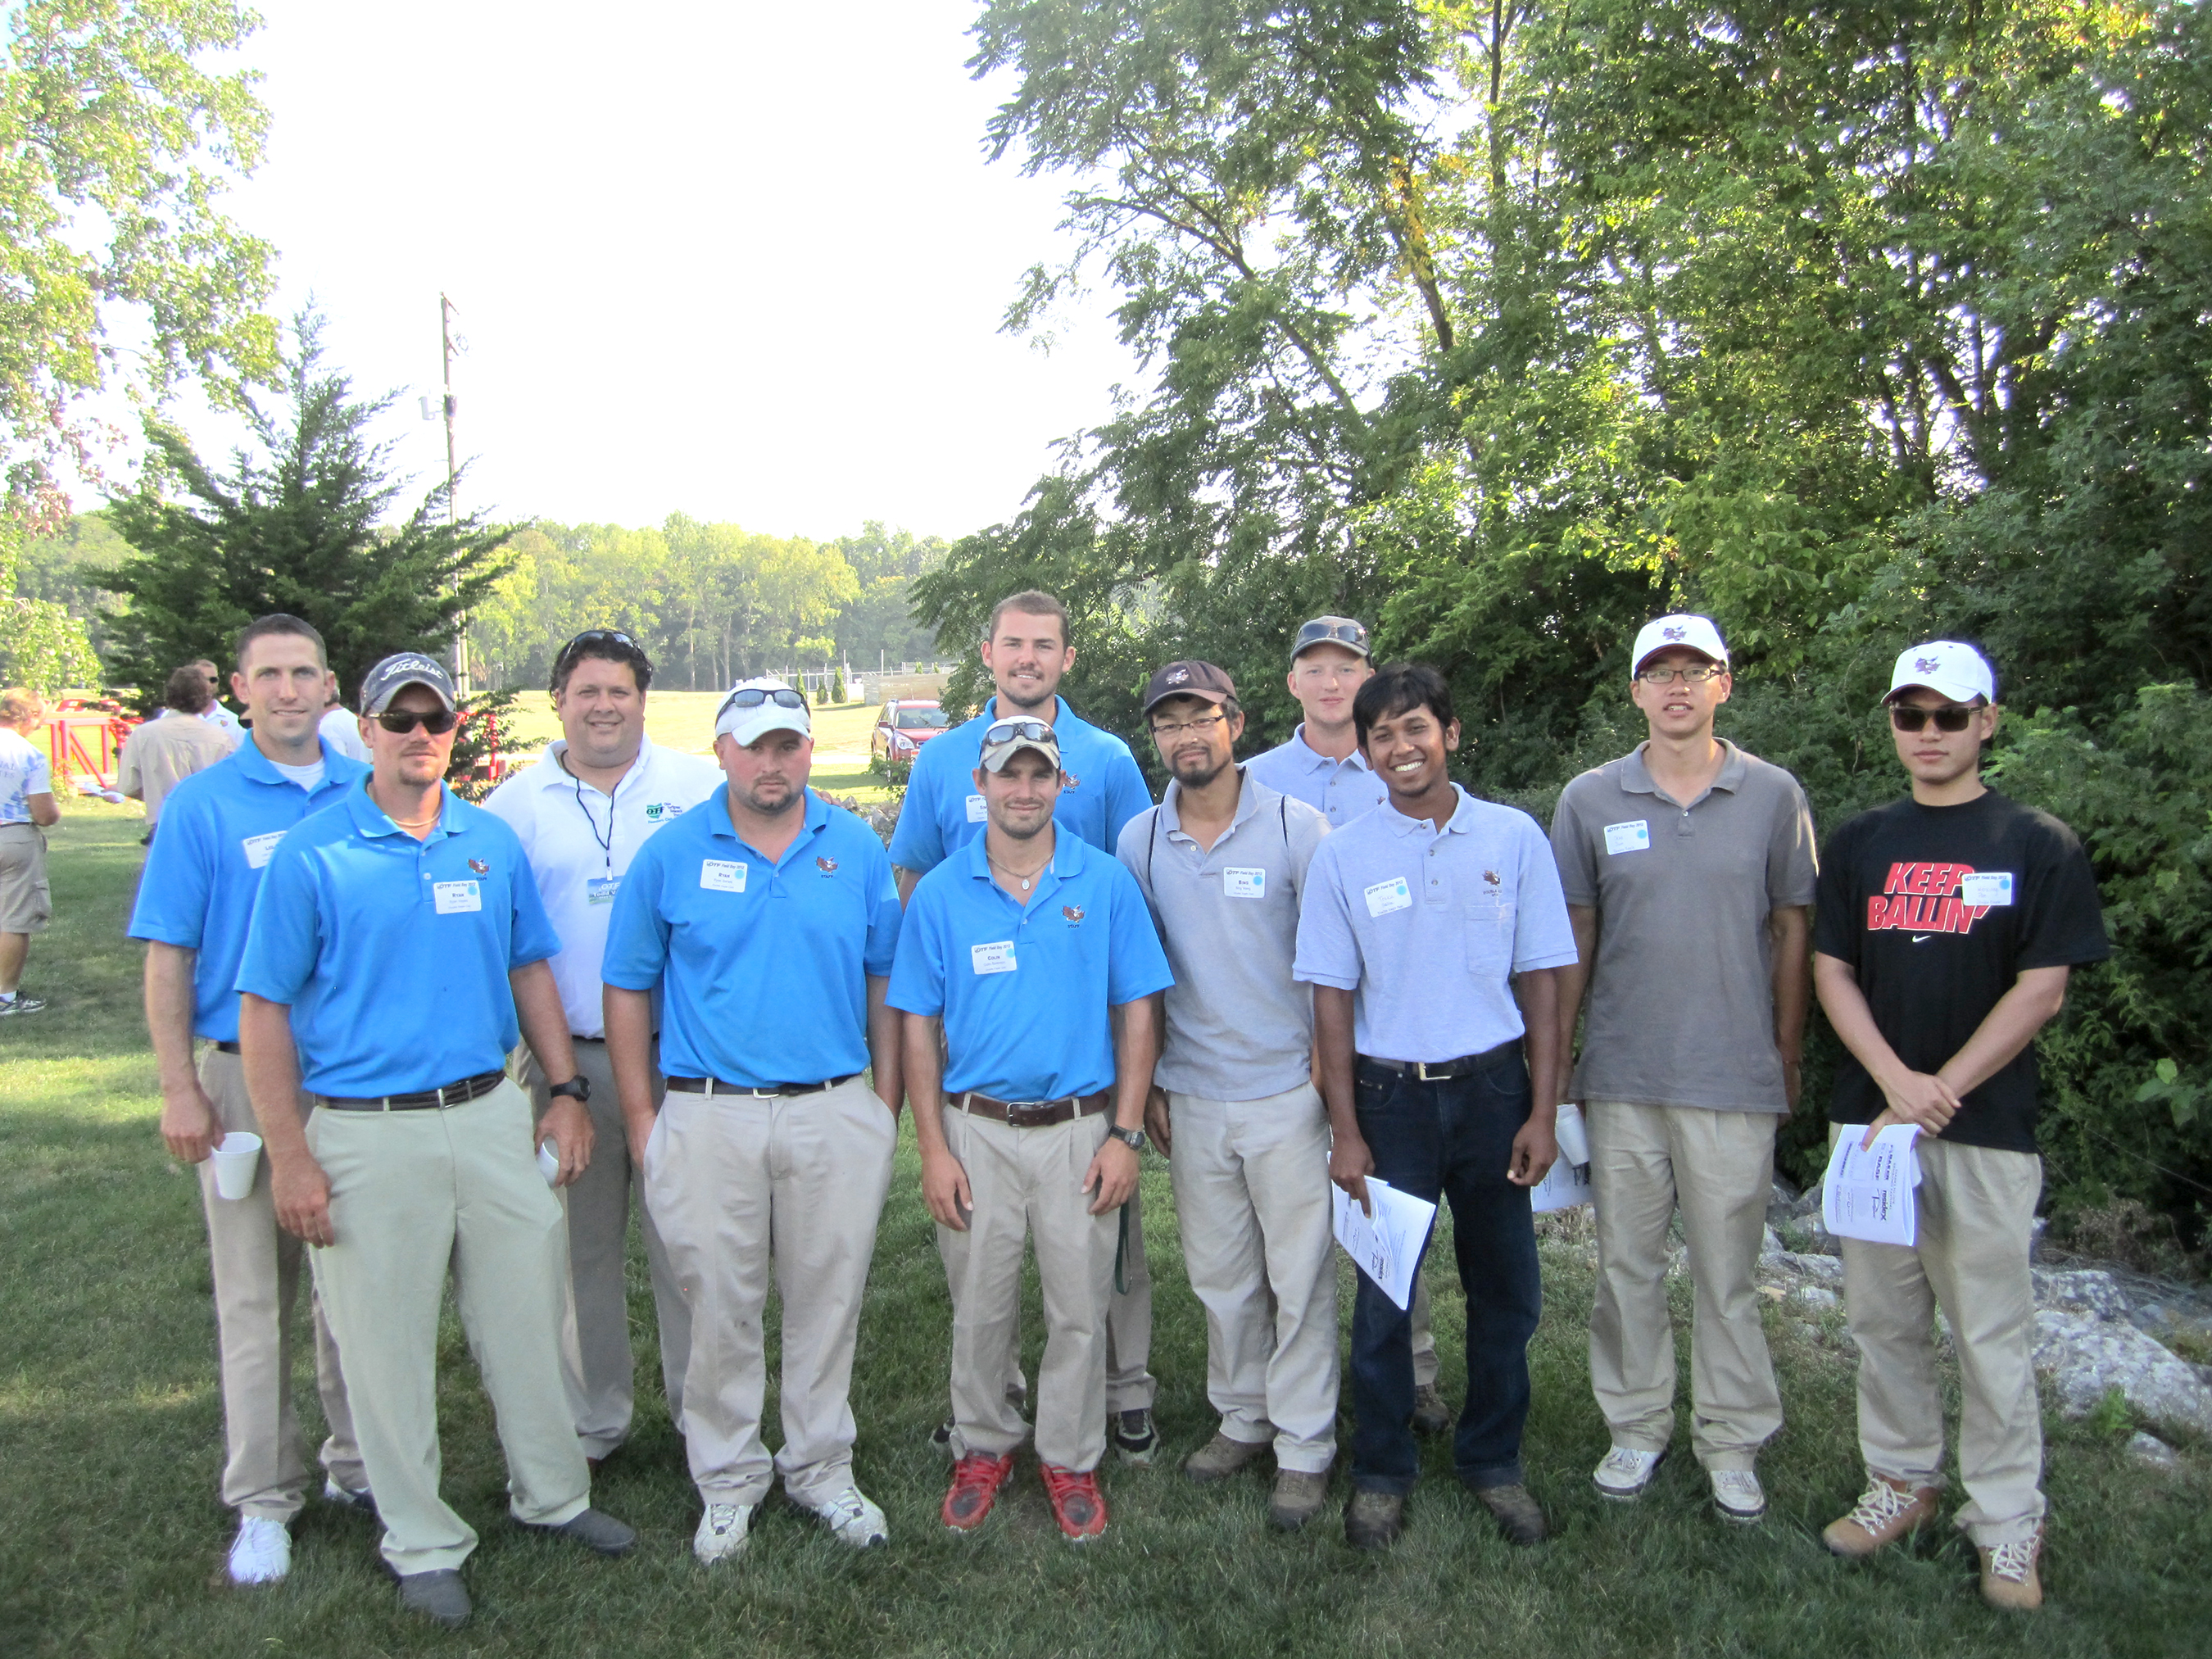 2012.08.08-OTF Research Field Day-Group Photo